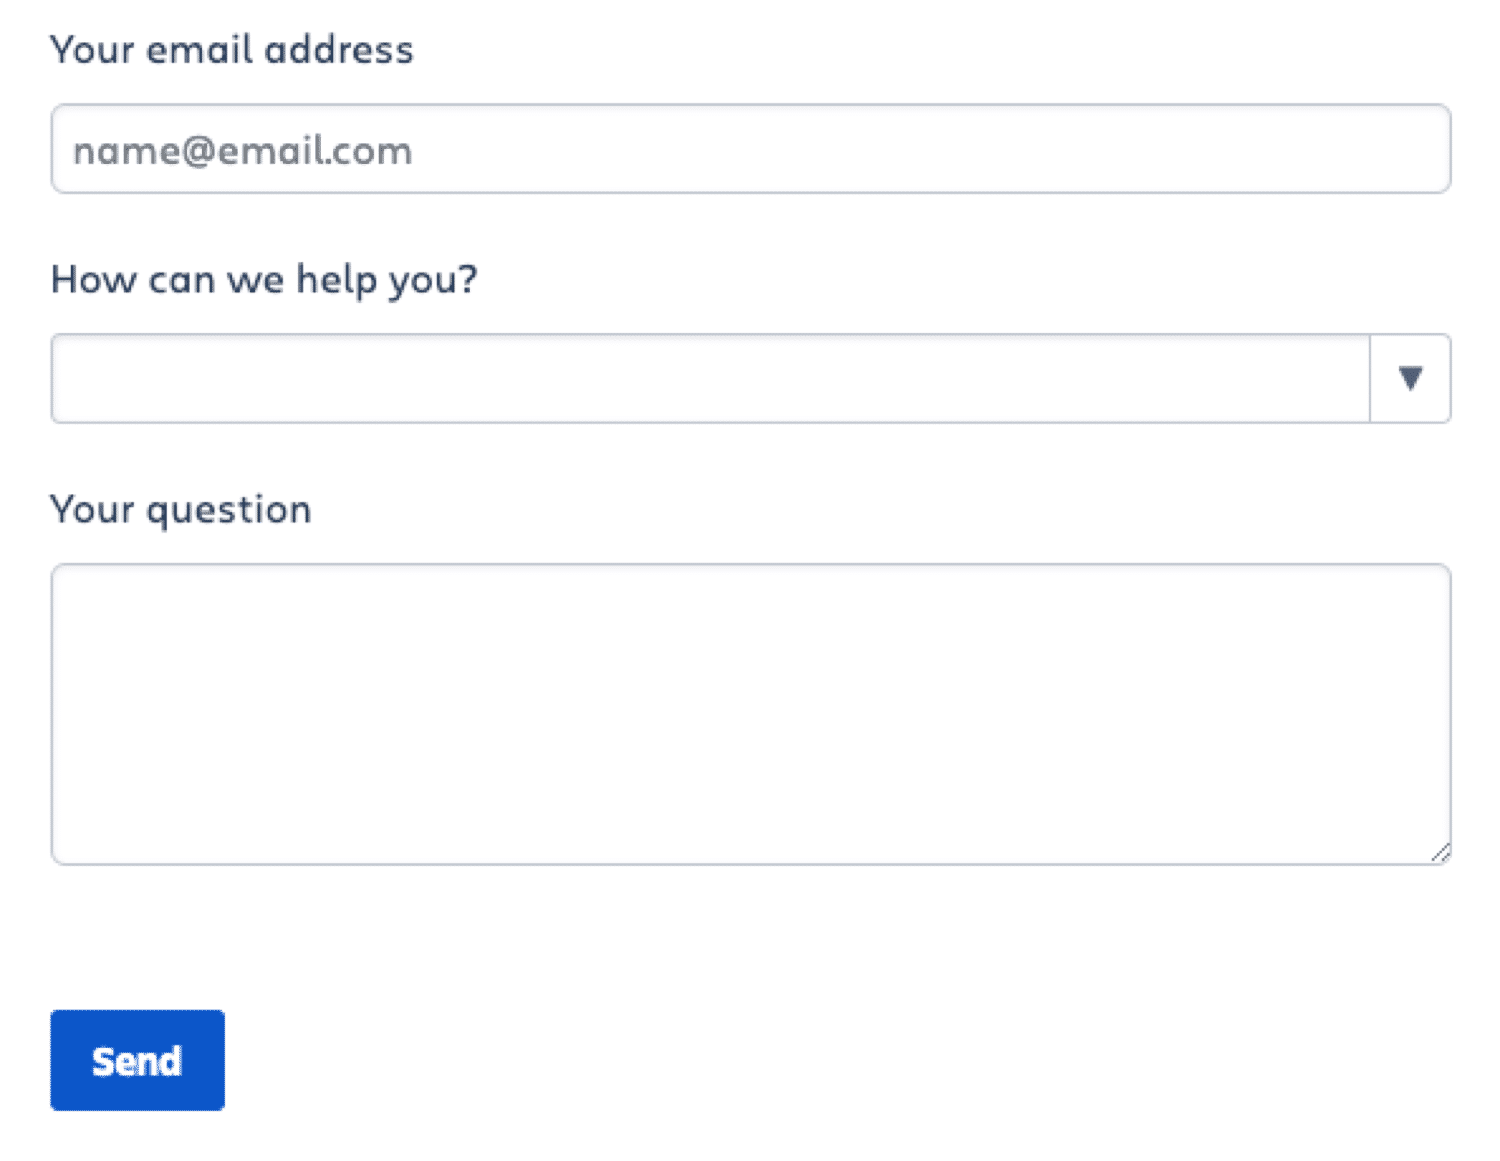 A standard contact form example